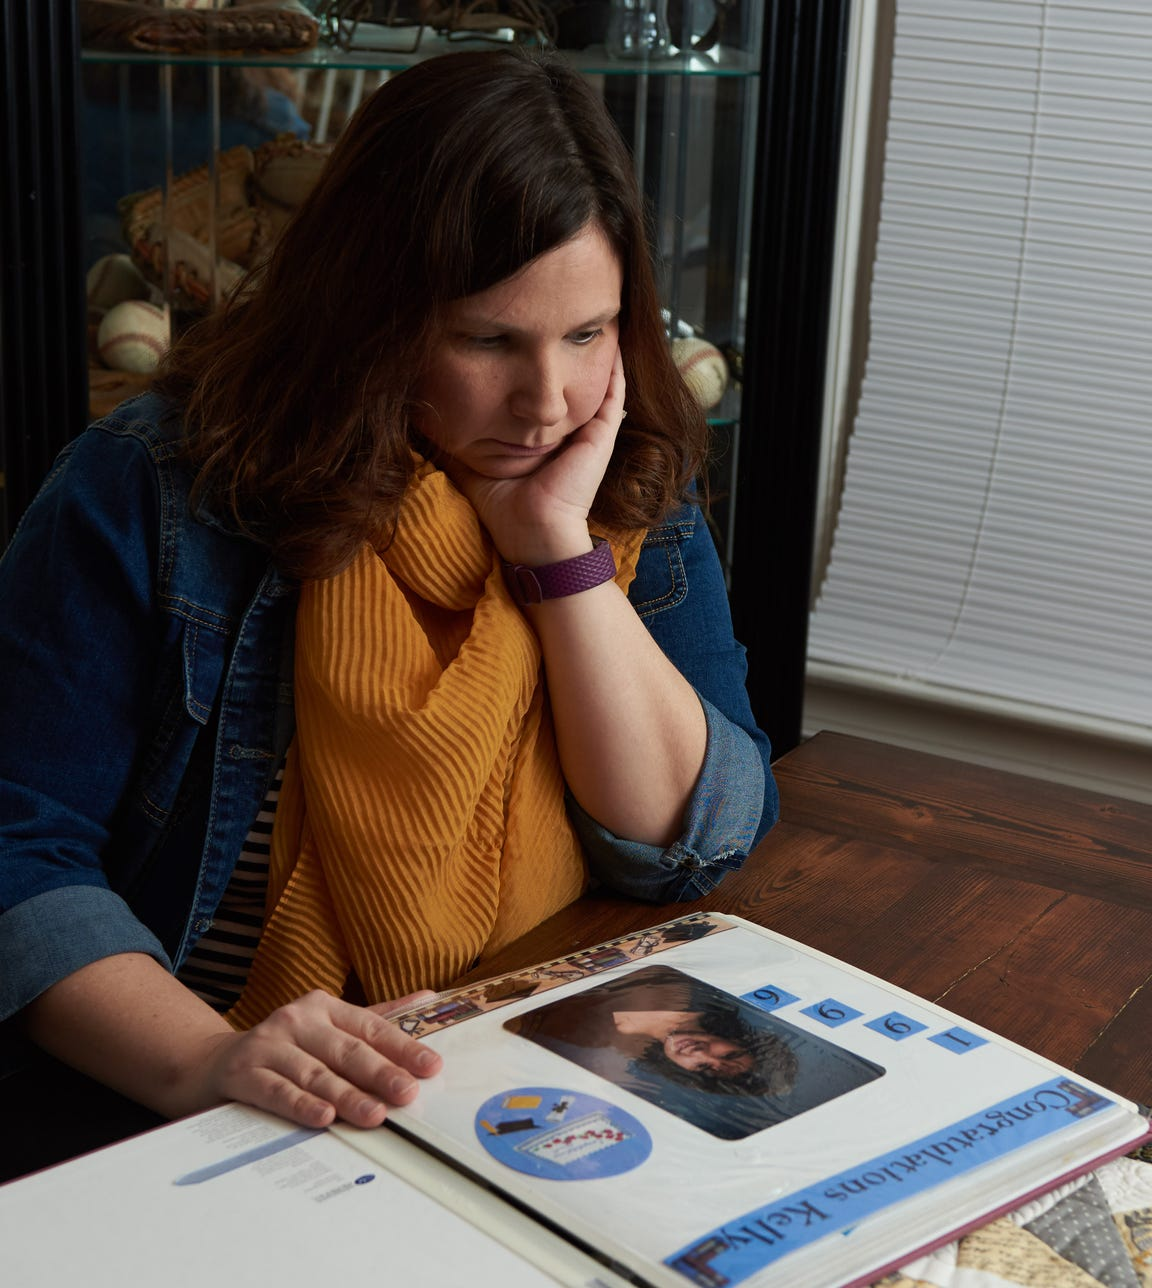 Kelly Haines looks at a photograph of herself as a child. Haines alleges she is a victim in the 1990s child exploitation case in Pennsylvania perpetrated by a teacher, John Longaker. Seen at her home in Quakertown, Pennsylvania, on Thursday, Jan. 10, 2019.